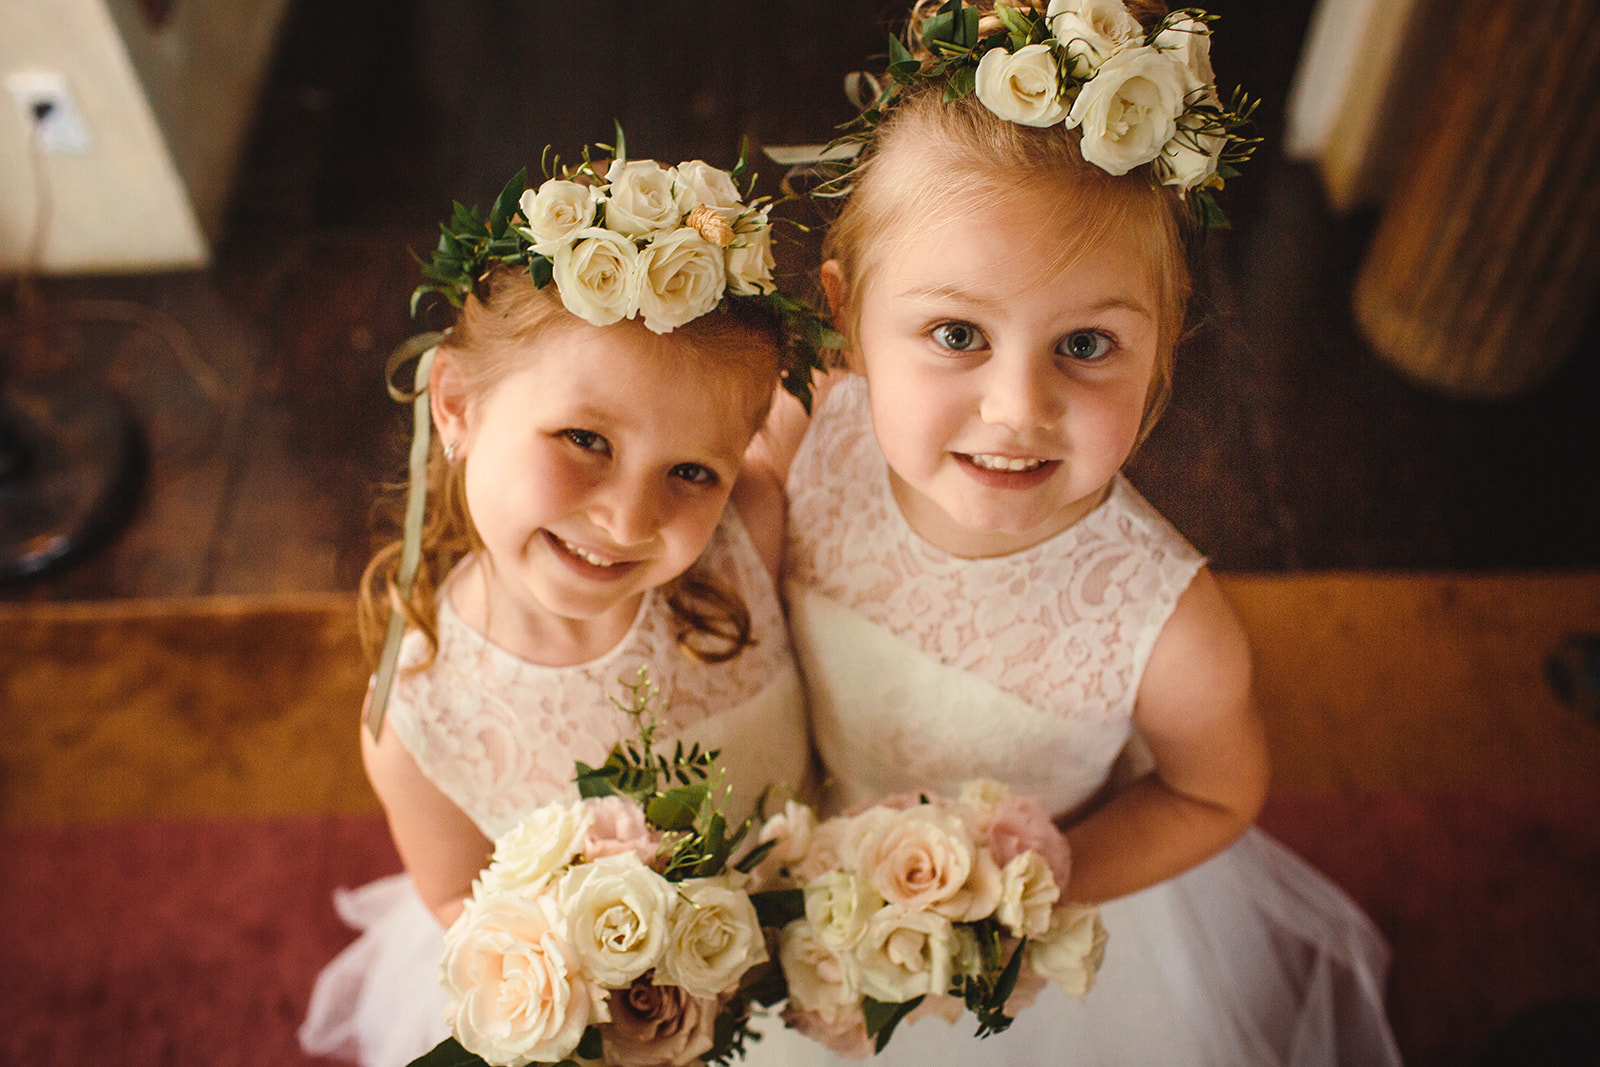 flower-girls-lace-dresses-floral-wreath